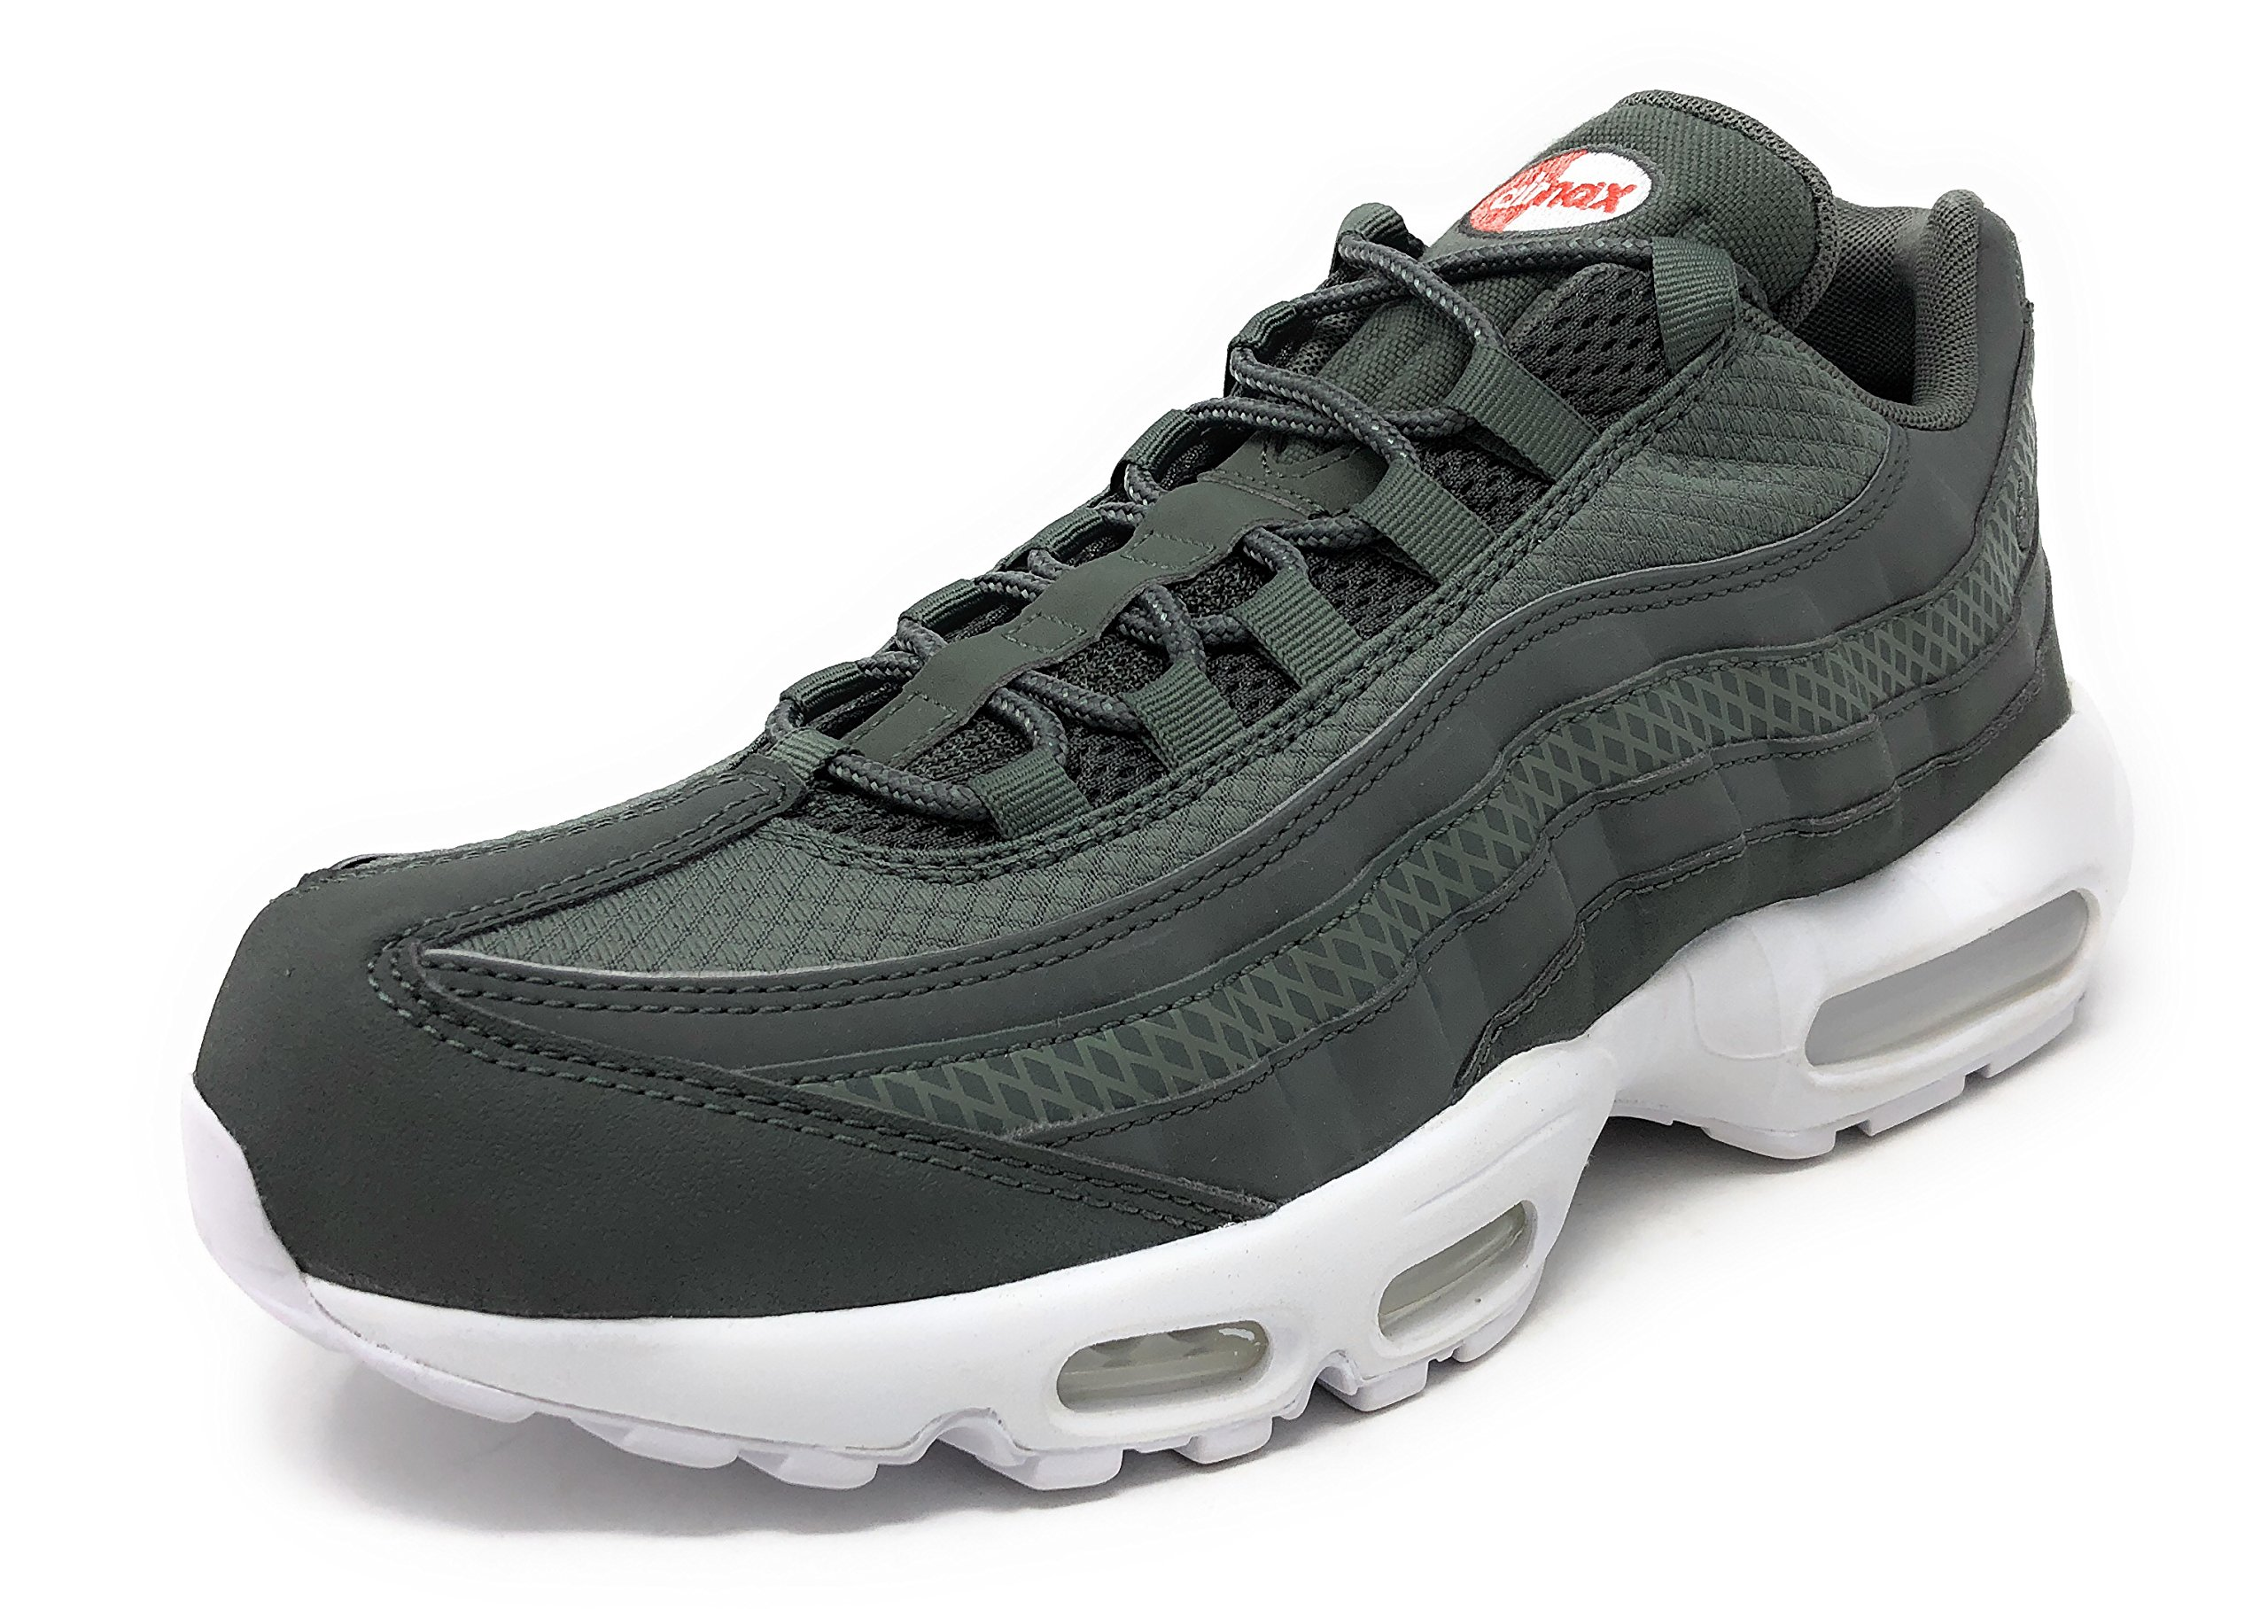 low priced c8824 c8515 Galleon - Nike Air Max 95 Premium SE River Rock River Rock-White, Size 10.5  US